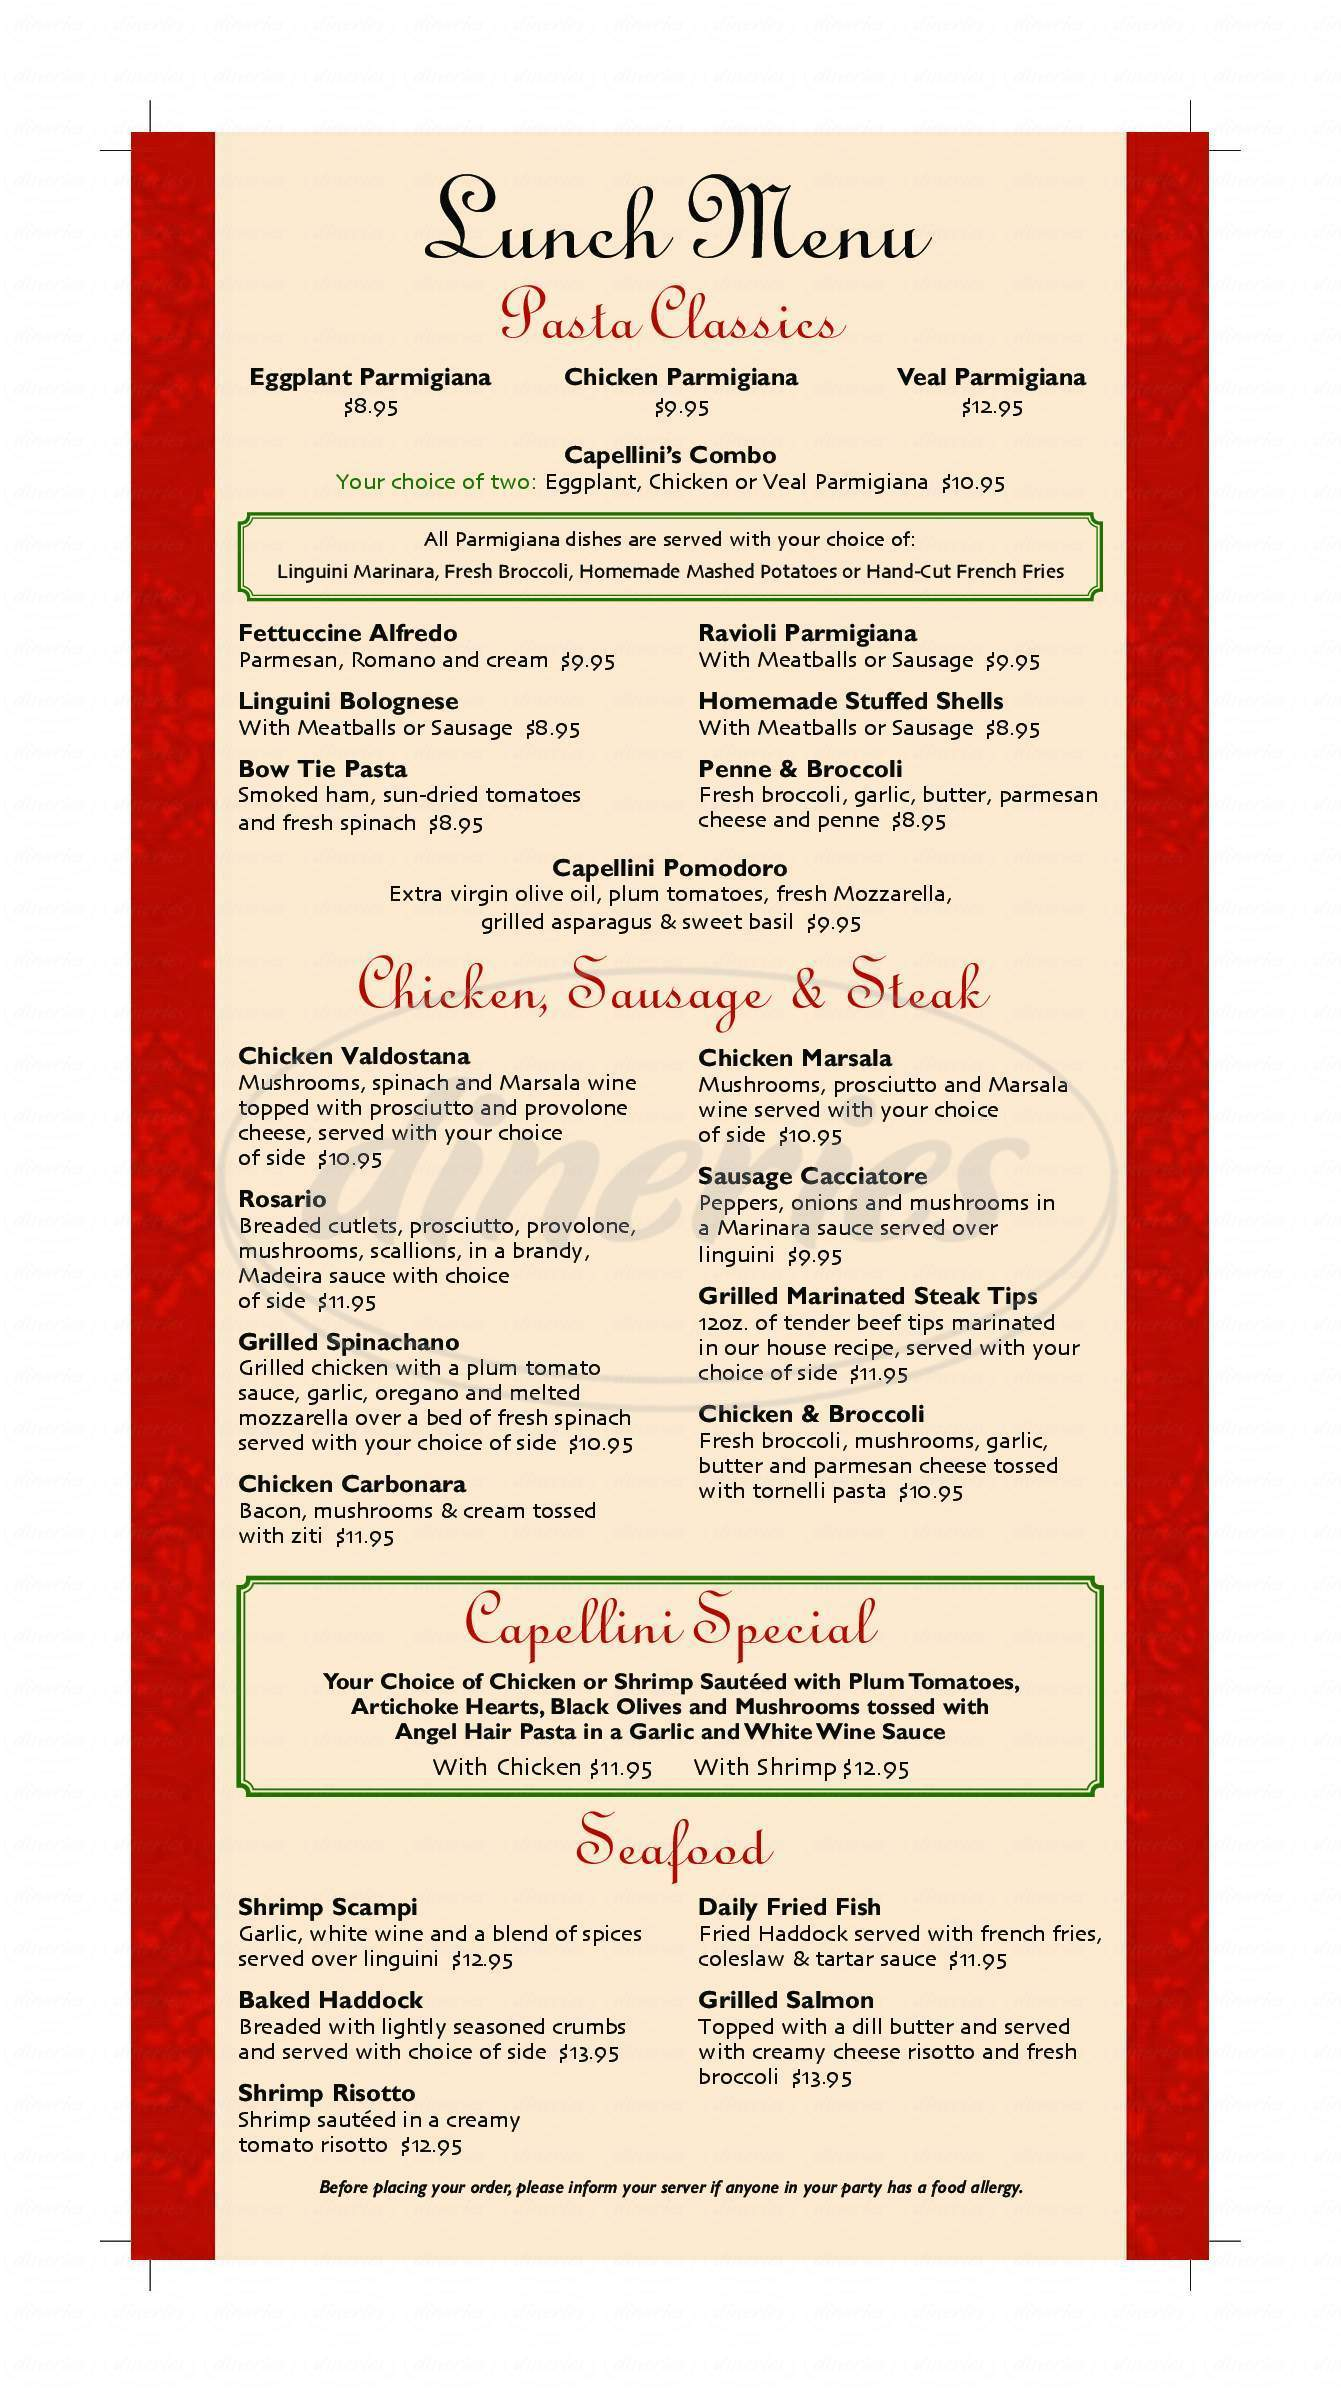 menu for Capellini's